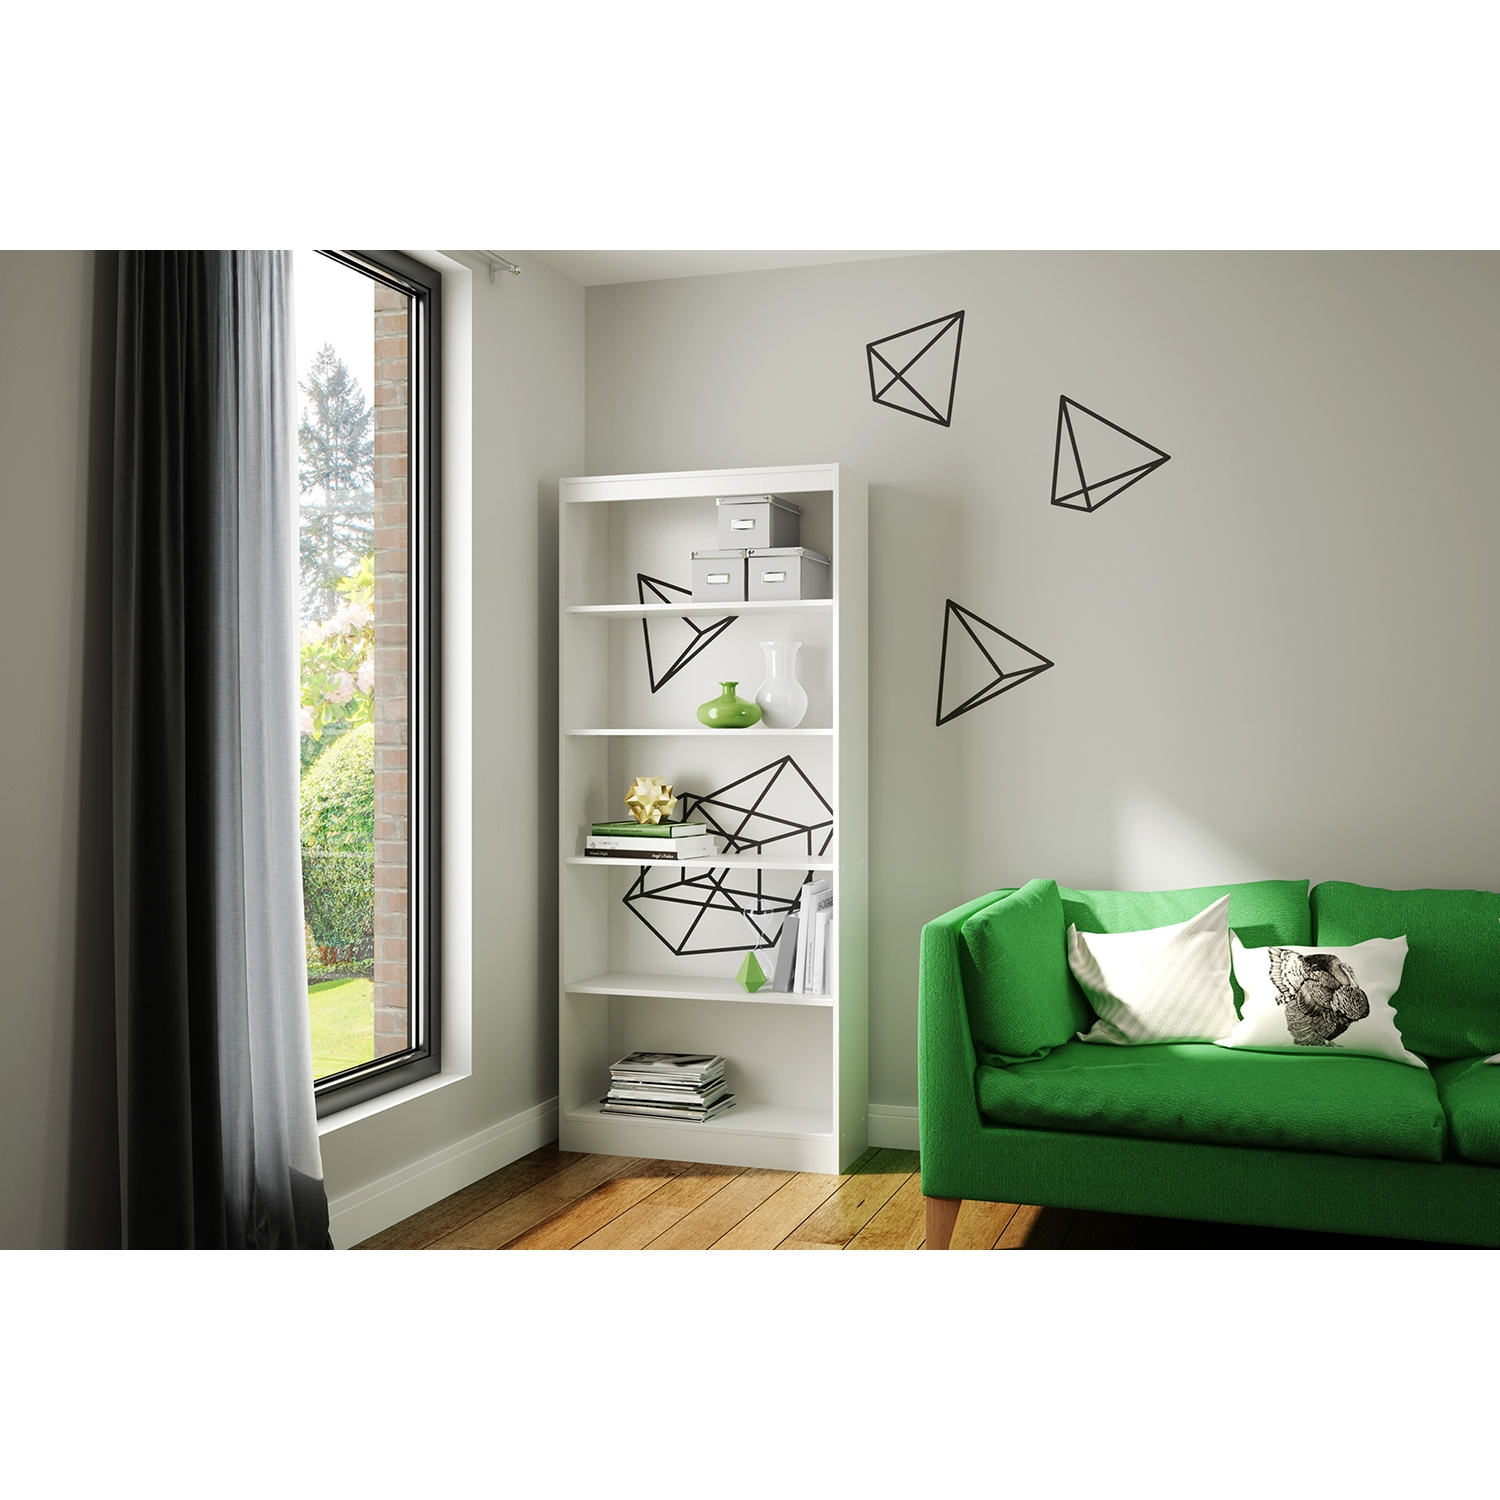 Axess Bookcase - 5 Shelves, Prisms Decals, Pure White - SS-8050137K